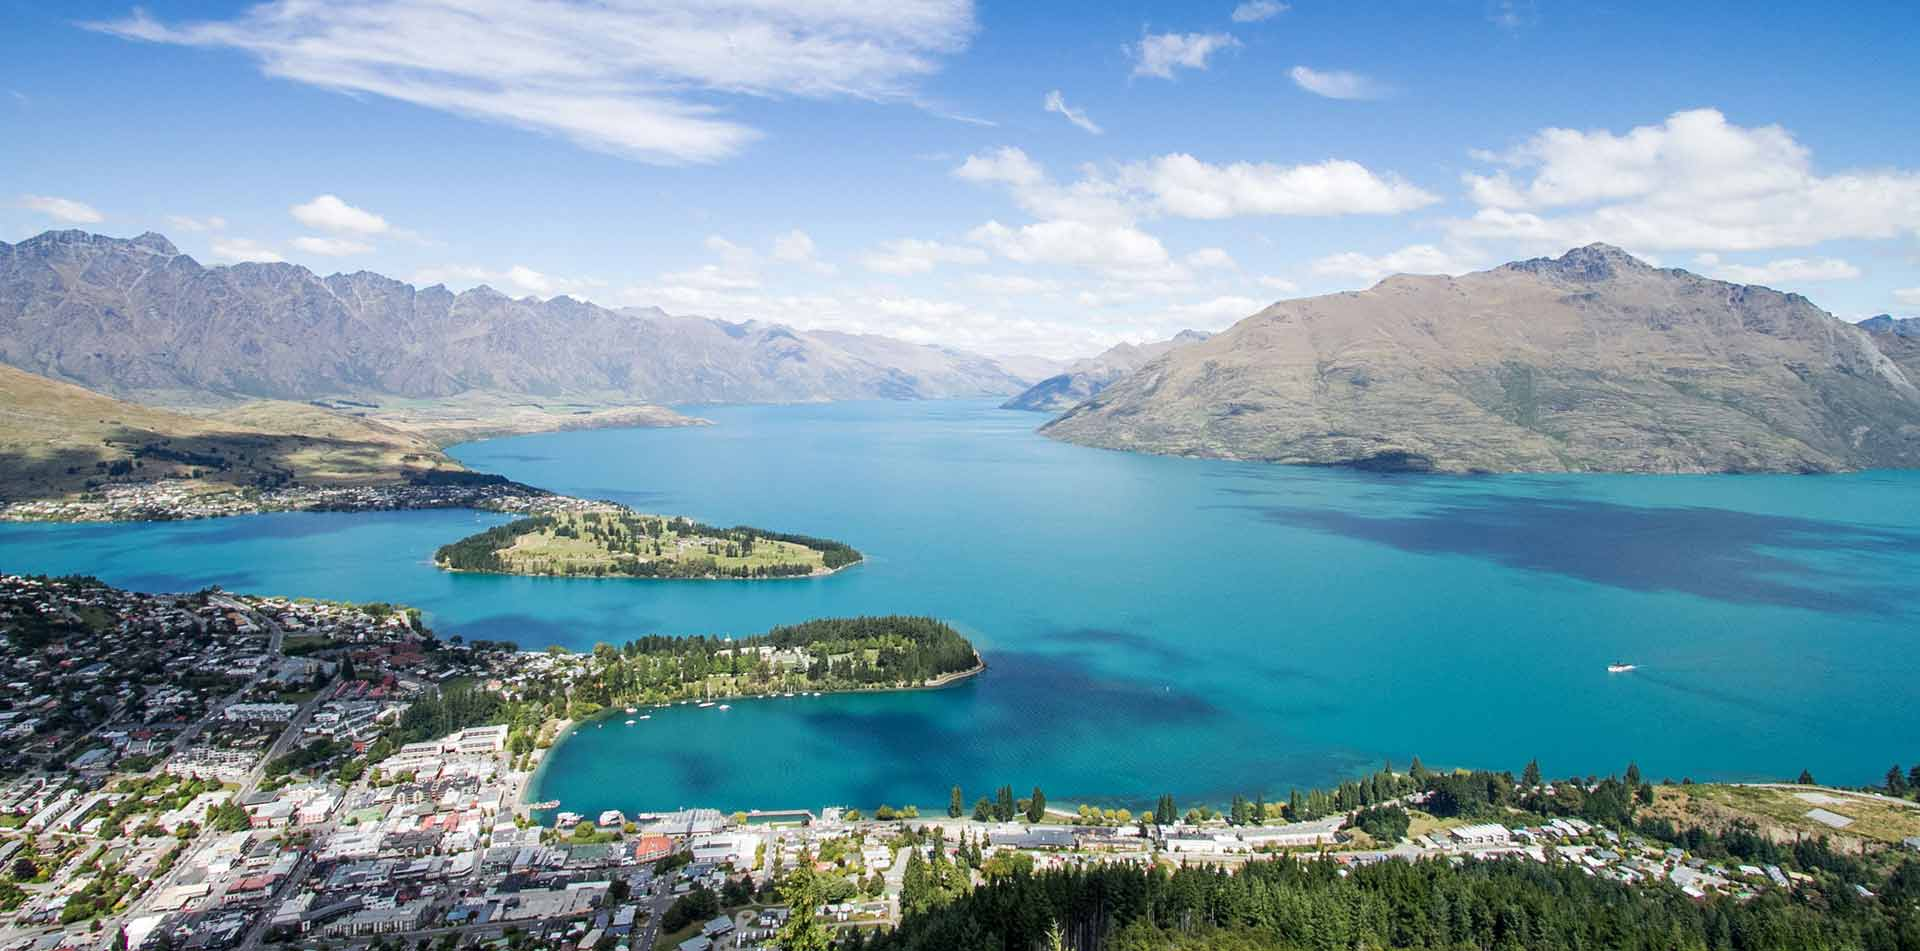 Queenstown Aerial View of the City, New Zealand